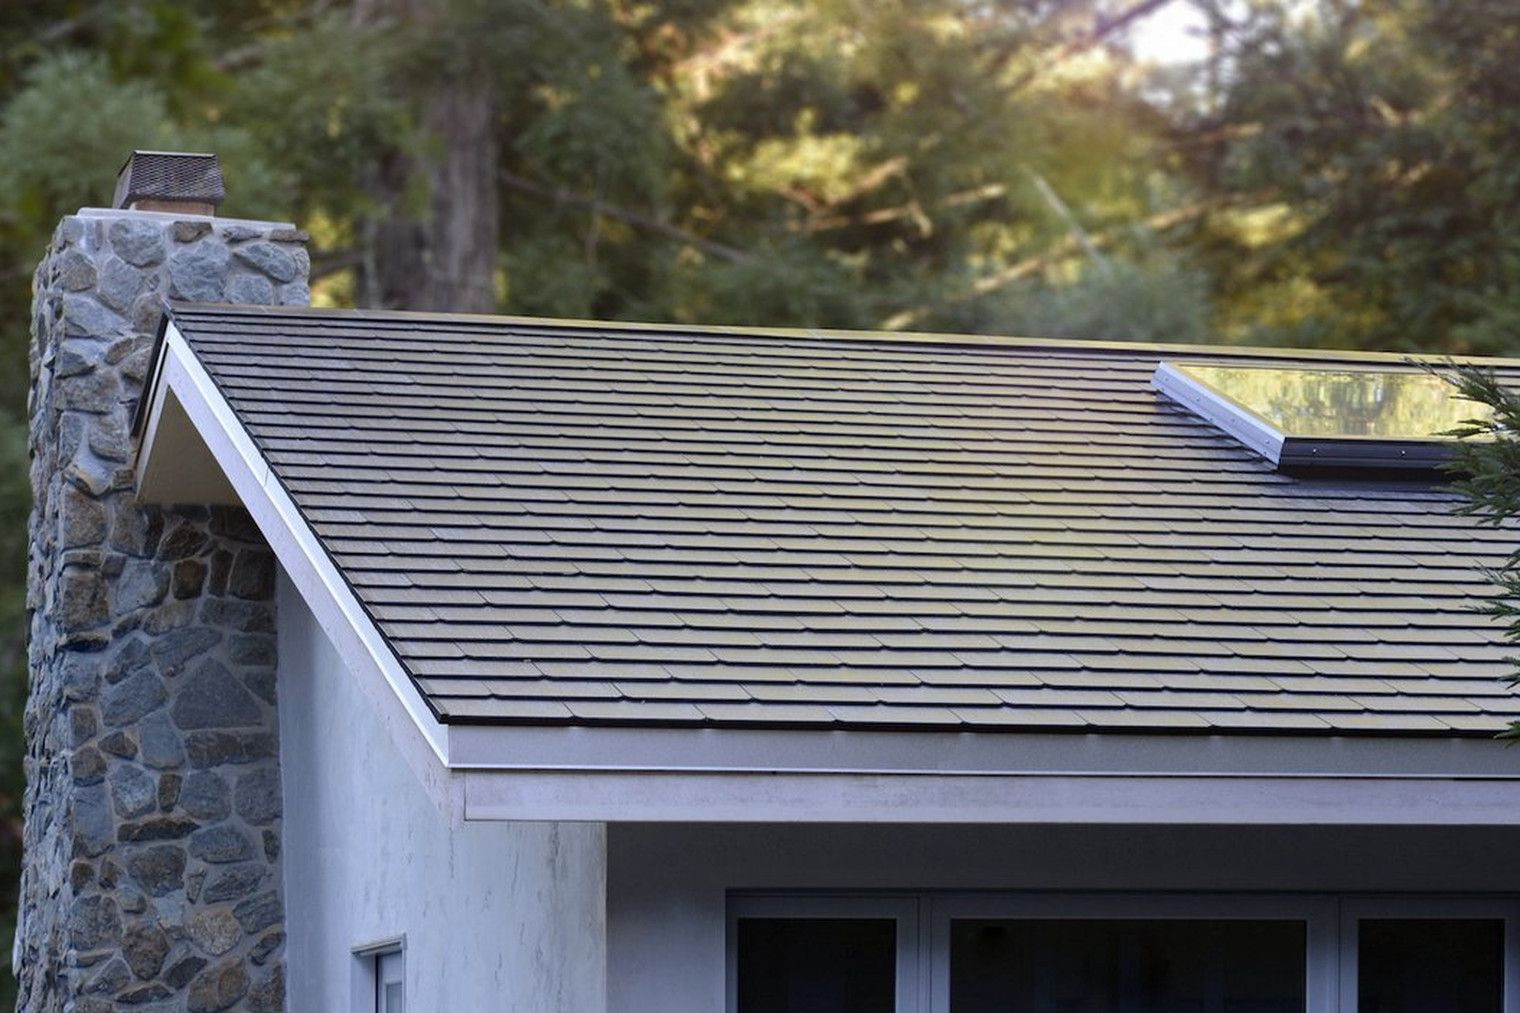 Here S What The First Tesla Solar Roofs Look Like In The Wild Tesla Solar Roof Solar Roof Solar Roof Tiles